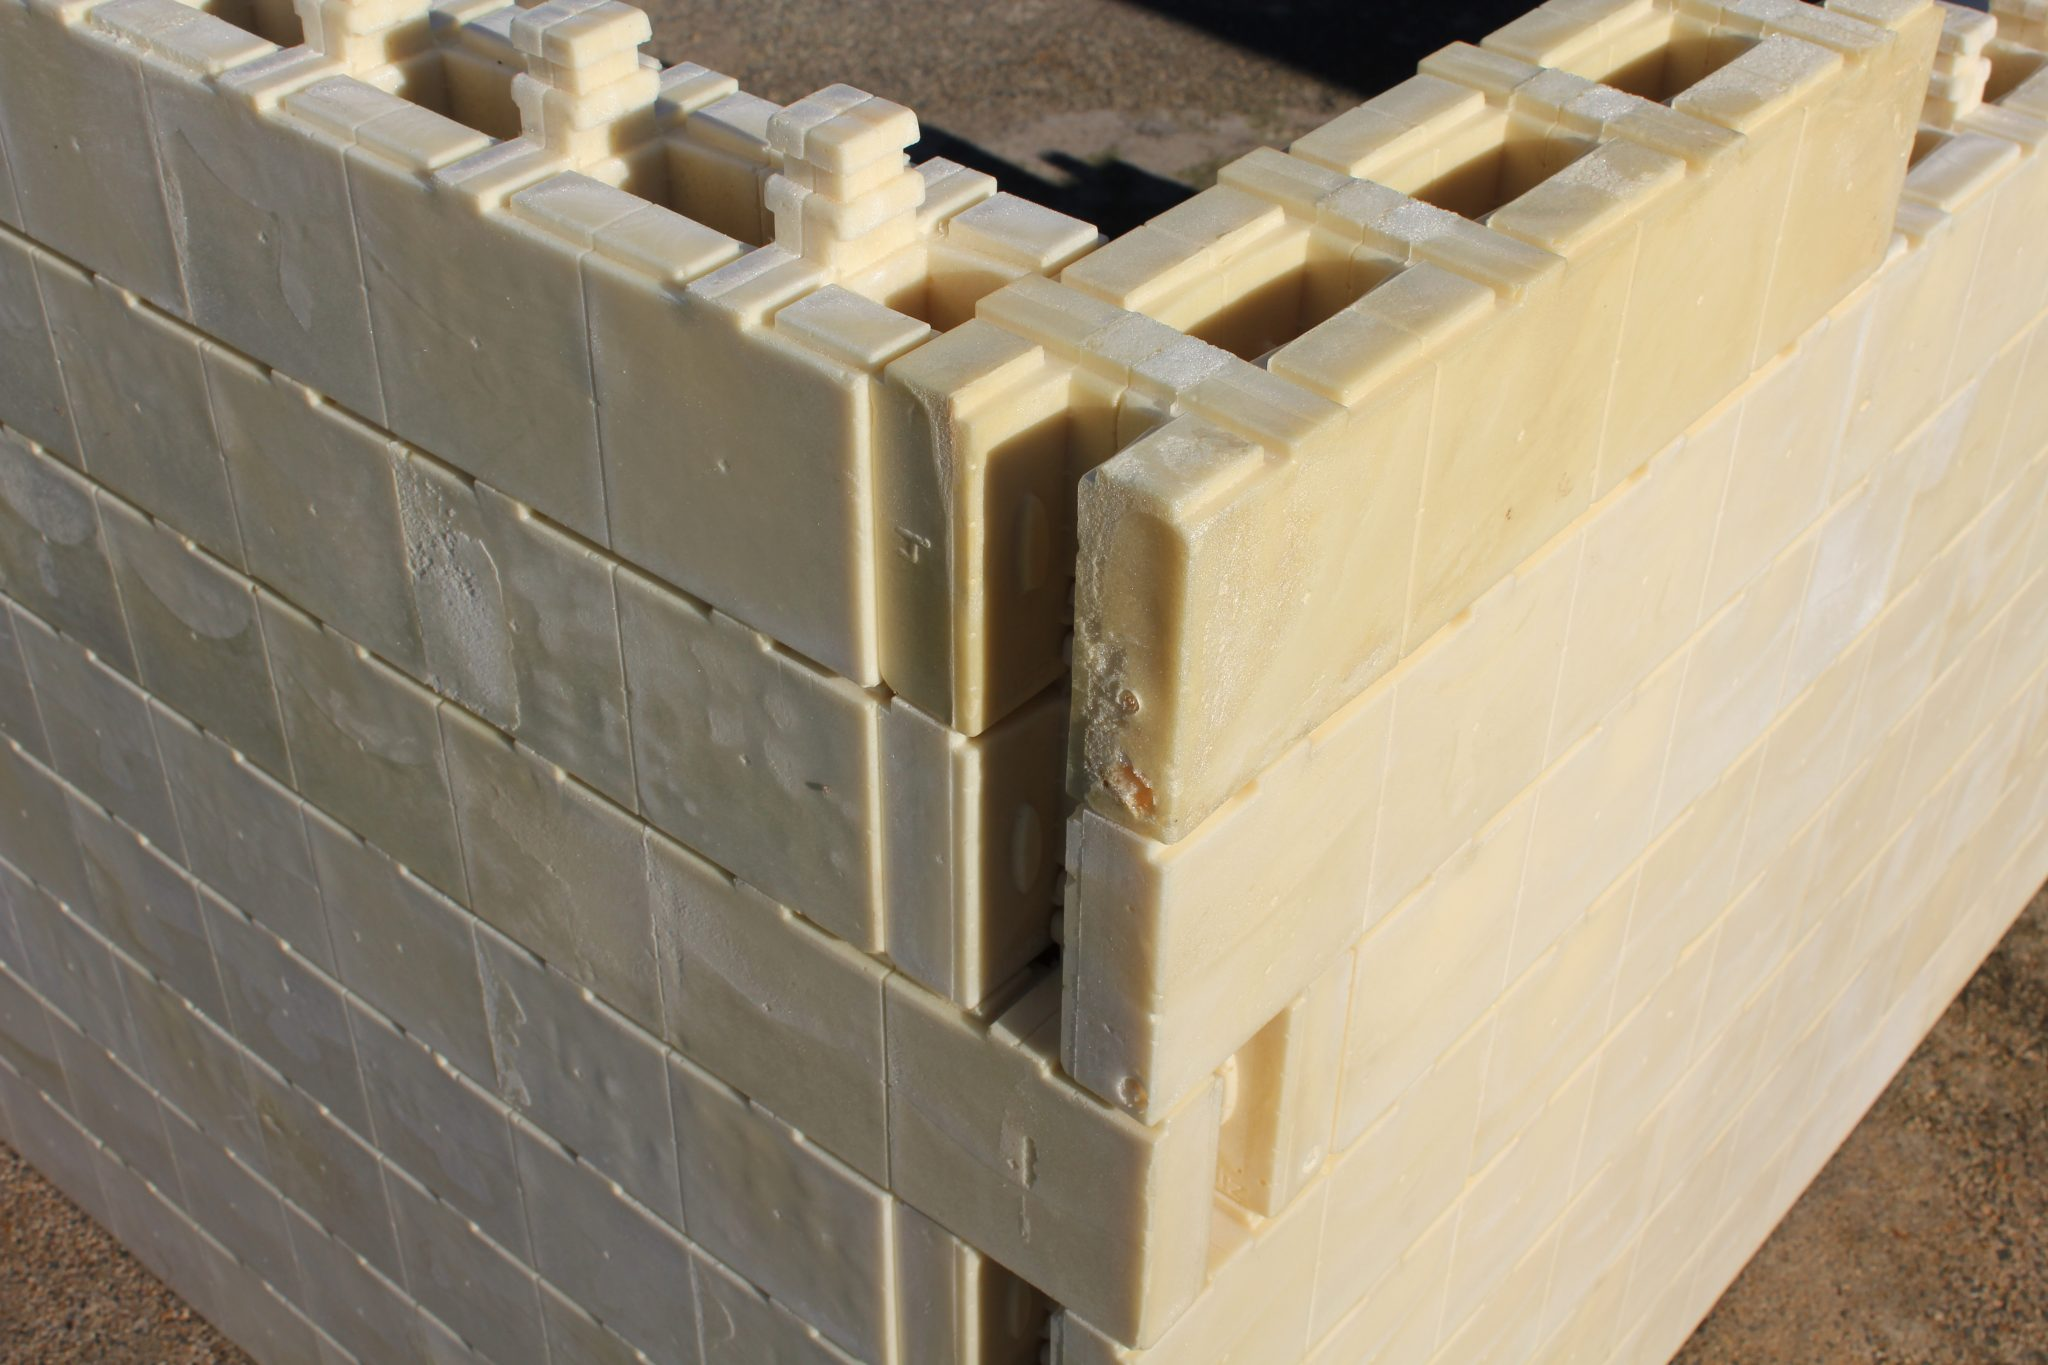 modular building blocks that fully interlock on placement ForFoam Block Wall Construction